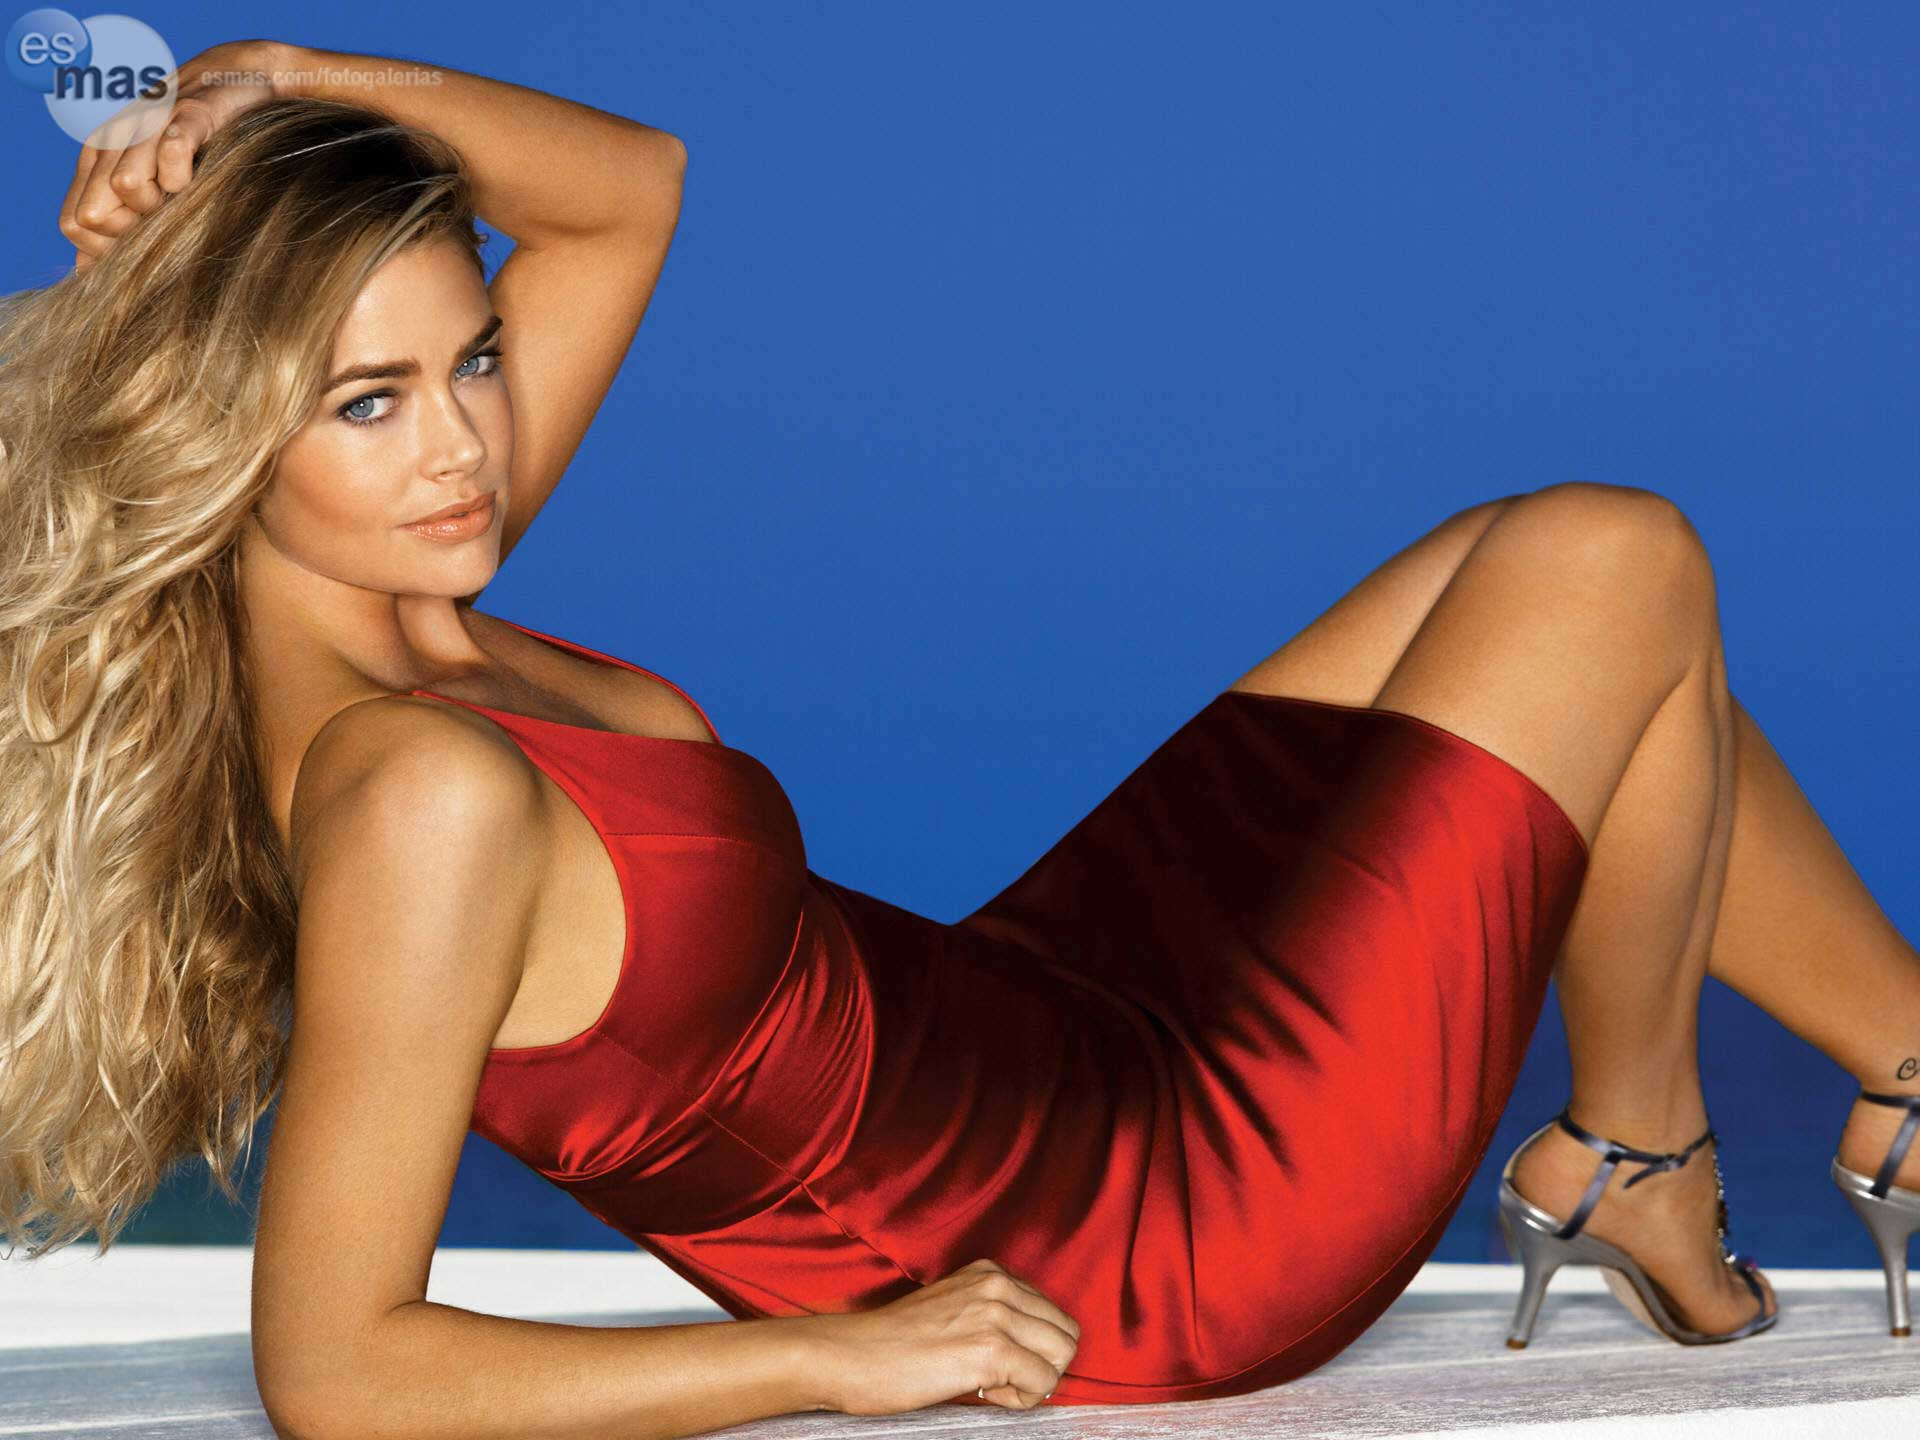 Denise richards Hot in Red Dress